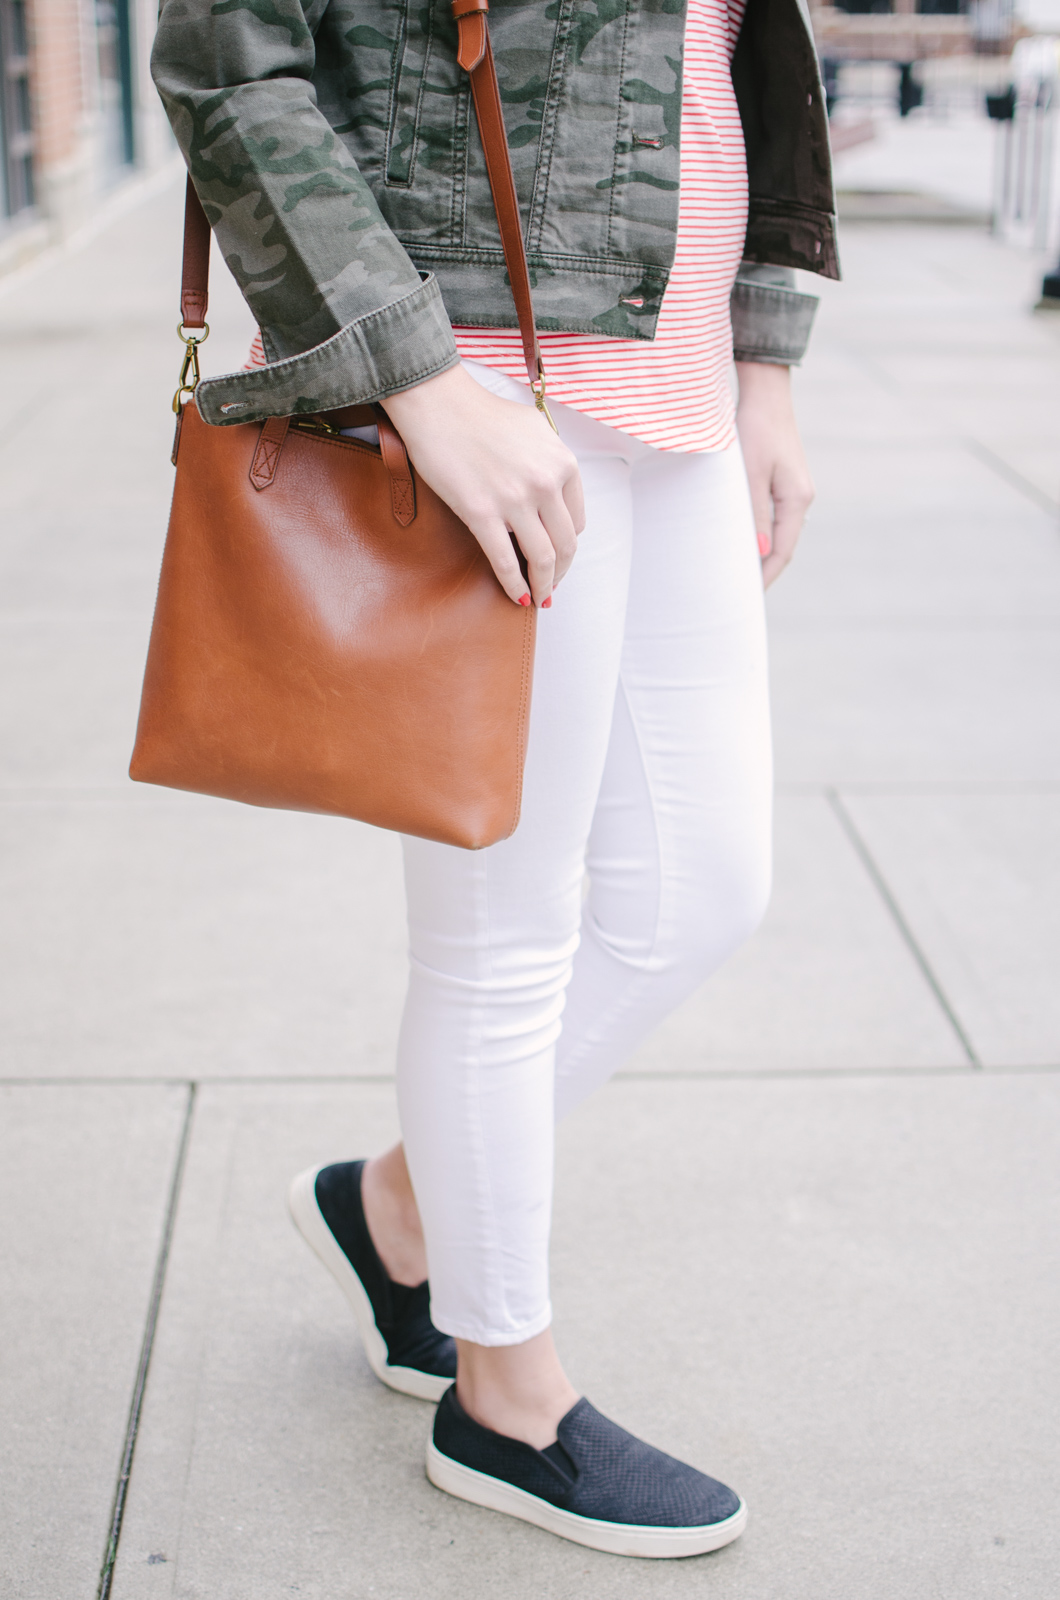 stripes and camo spring outfit - spring casual outfit | See more cute spring outfits at bylaurenm.com!